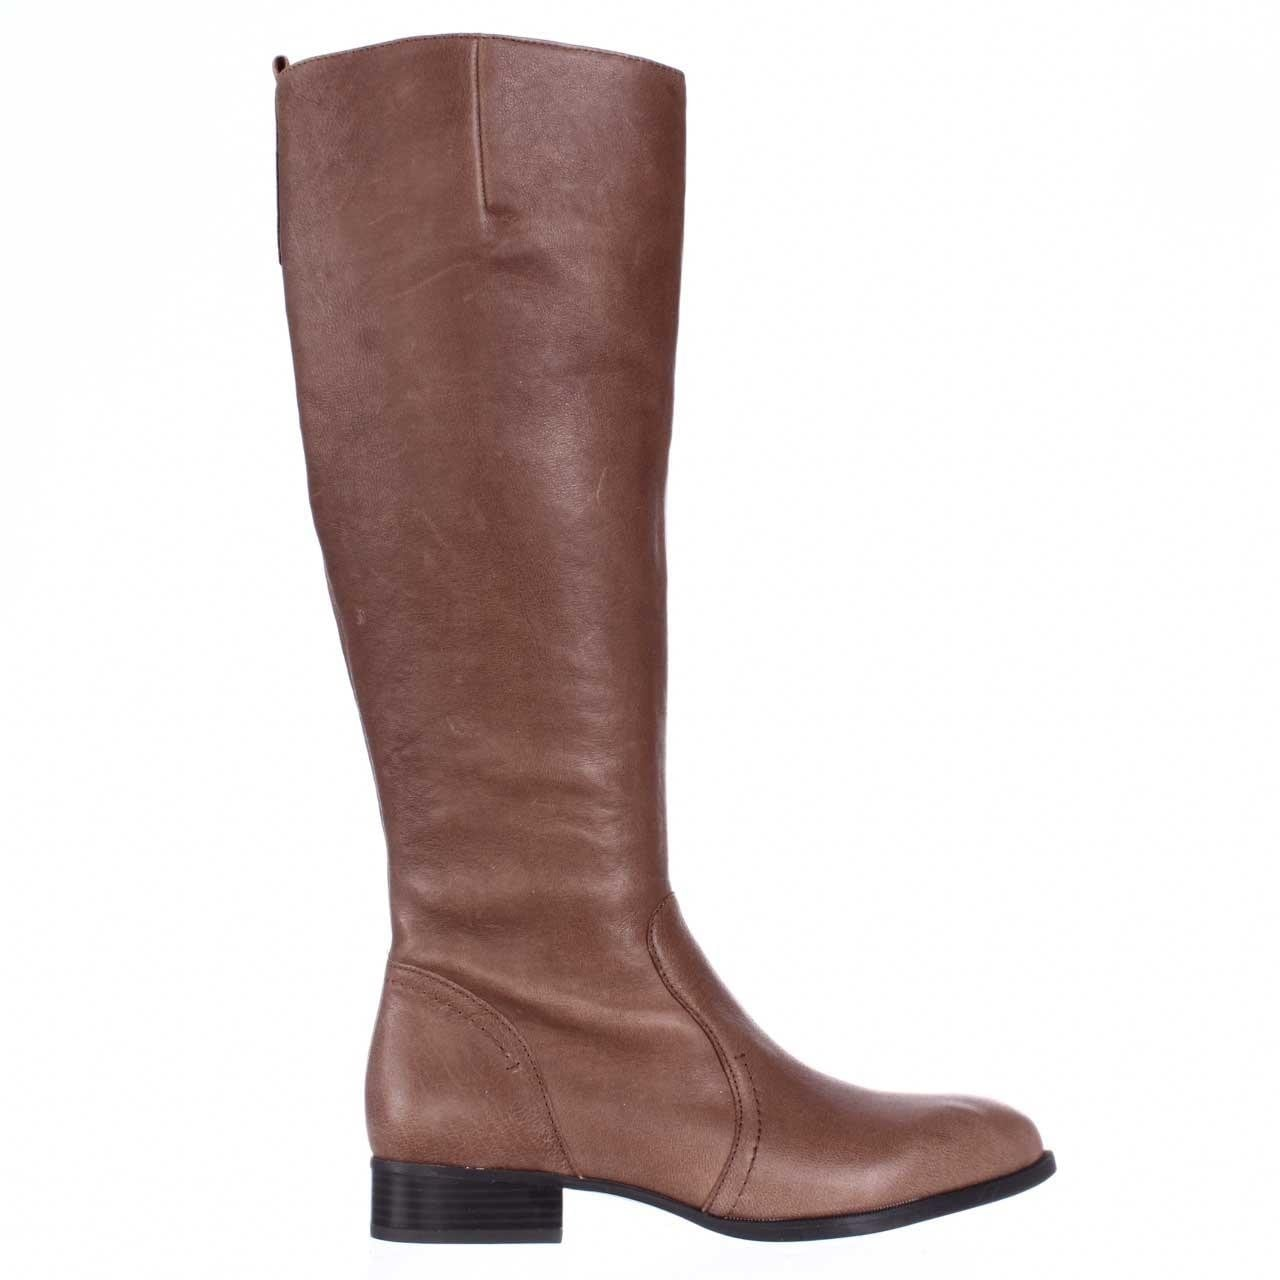 9784bd38d1a Shop Nine West Womens Nicolah-Wide Calf Leather Pointed Toe Knee High  Fashion Boots - Free Shipping Today - Overstock.com - 16760045